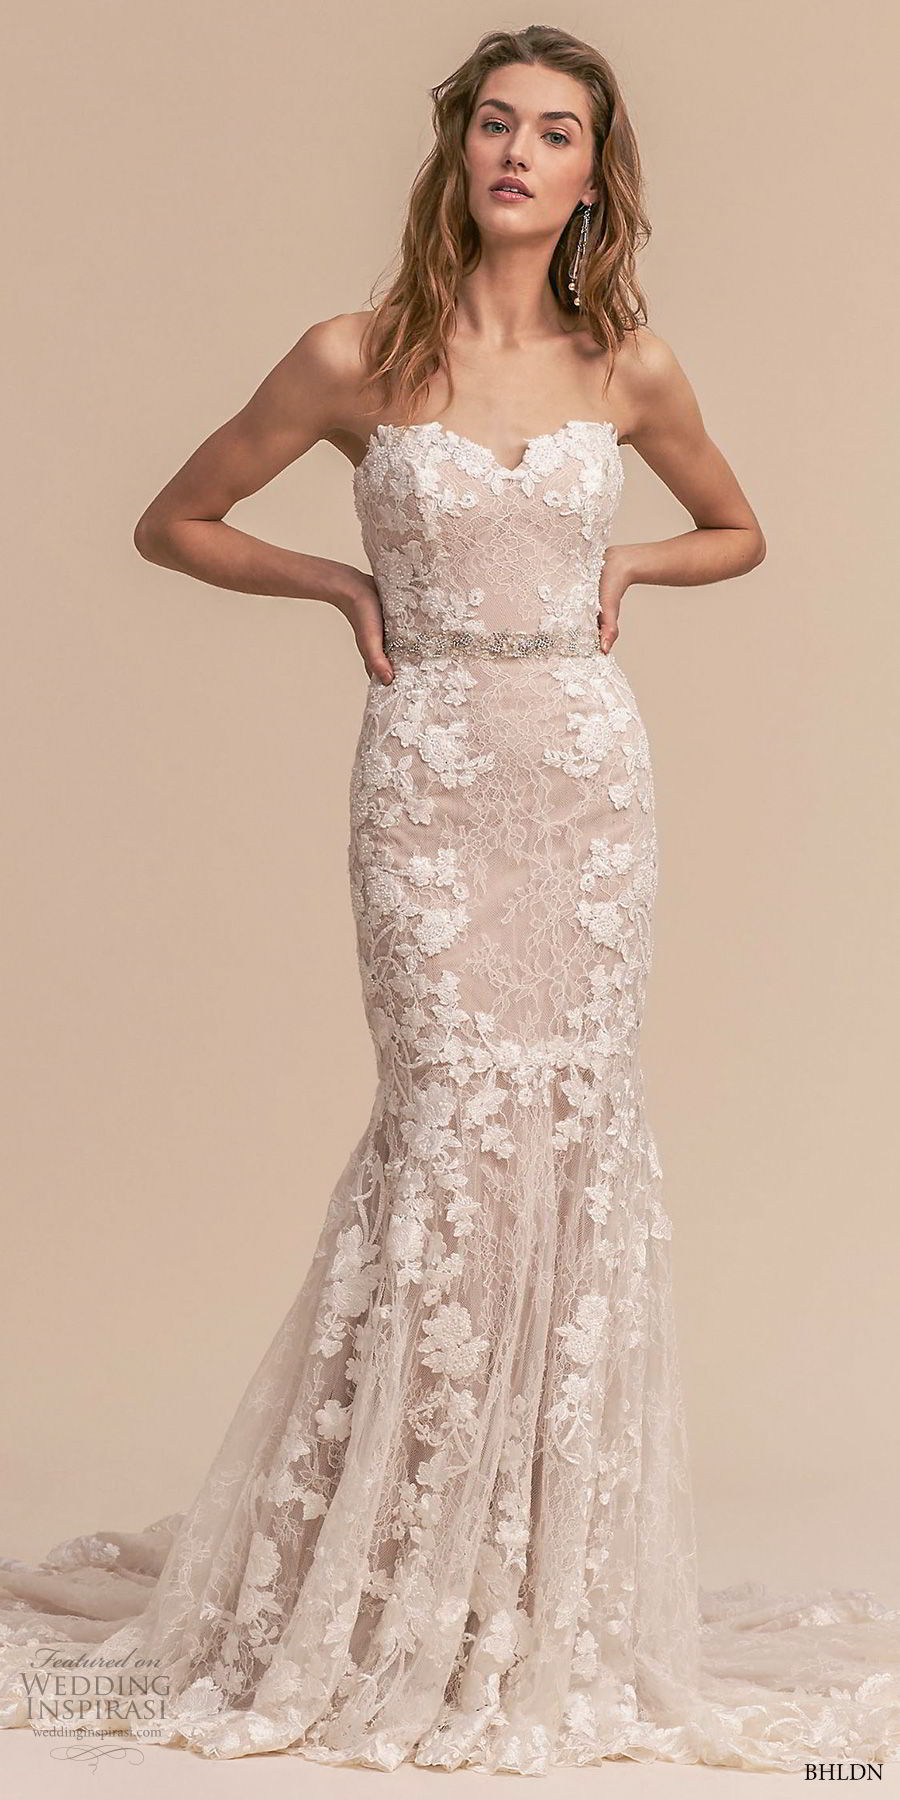 bhldn 2018 whispers bridal strapless sweetheart neckline full embellishment romantic blush mermaid weddinbg dress chapel train (3) mv